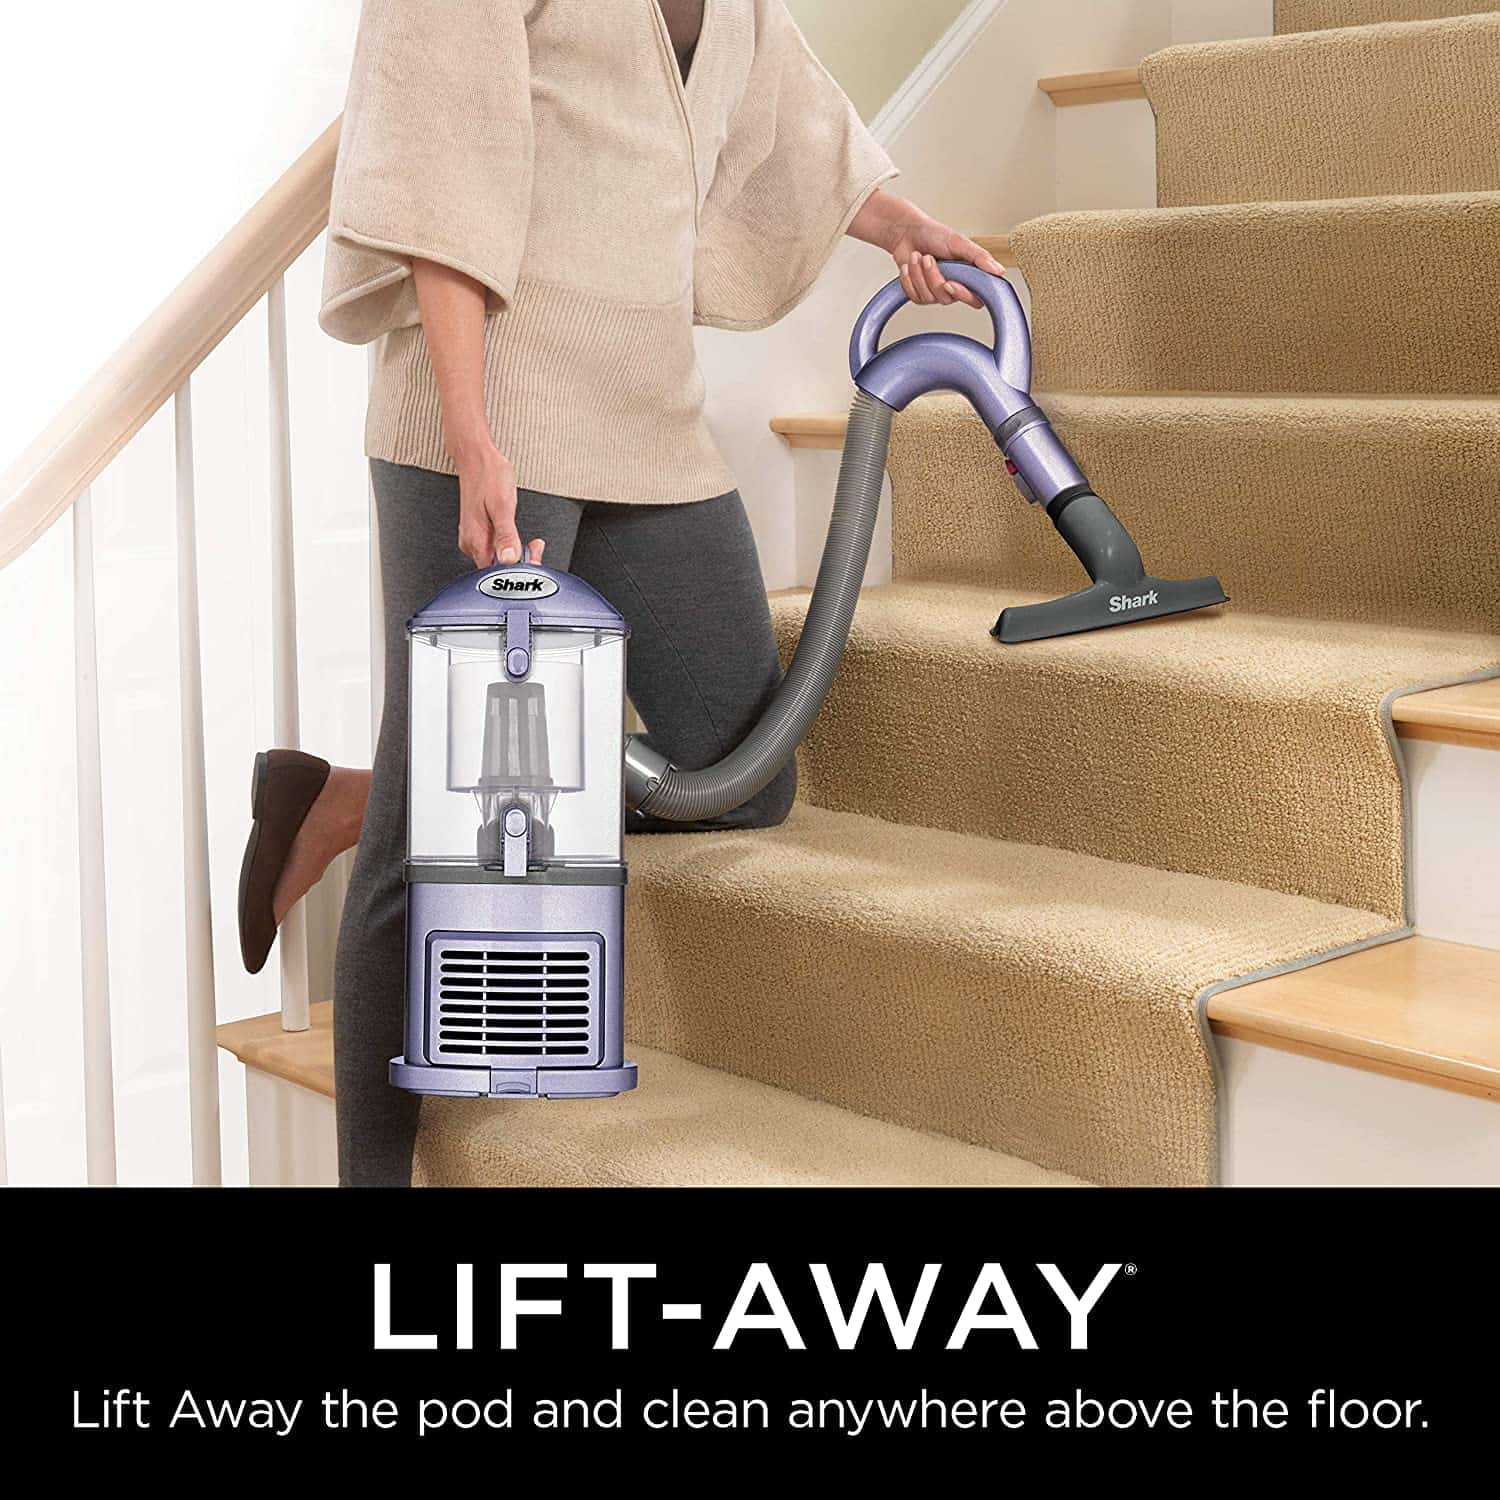 Best lightweight upright vacuum: Shark NV352 Navigator Lift-Away